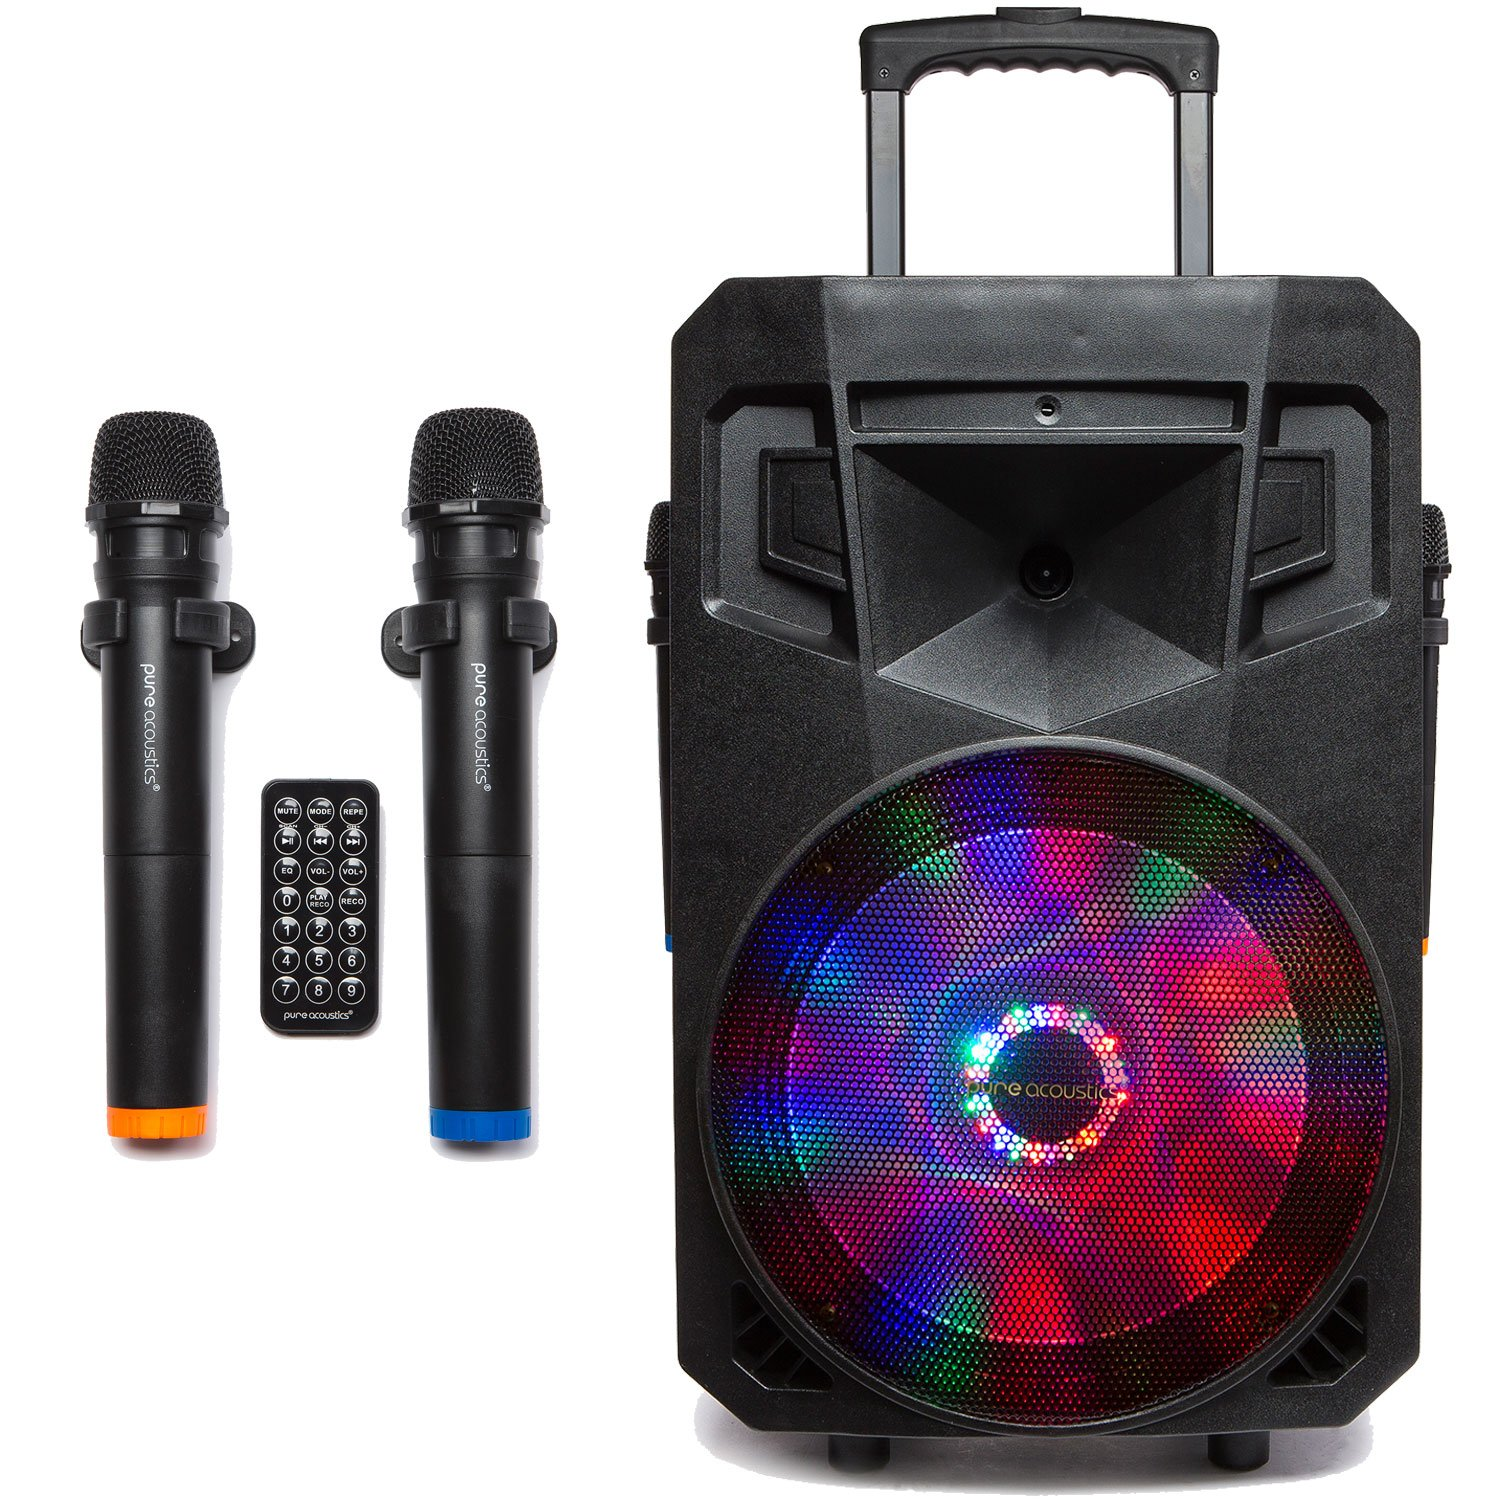 PA System with LED Party Lights, Wireless Portable Bluetooth Audio Speaker with 2 Wireless Microphones FM Radio Party Karaoke Machine Sound System MCP-75 Suono Soundstream by Pure Acoustics MCP-75BLED